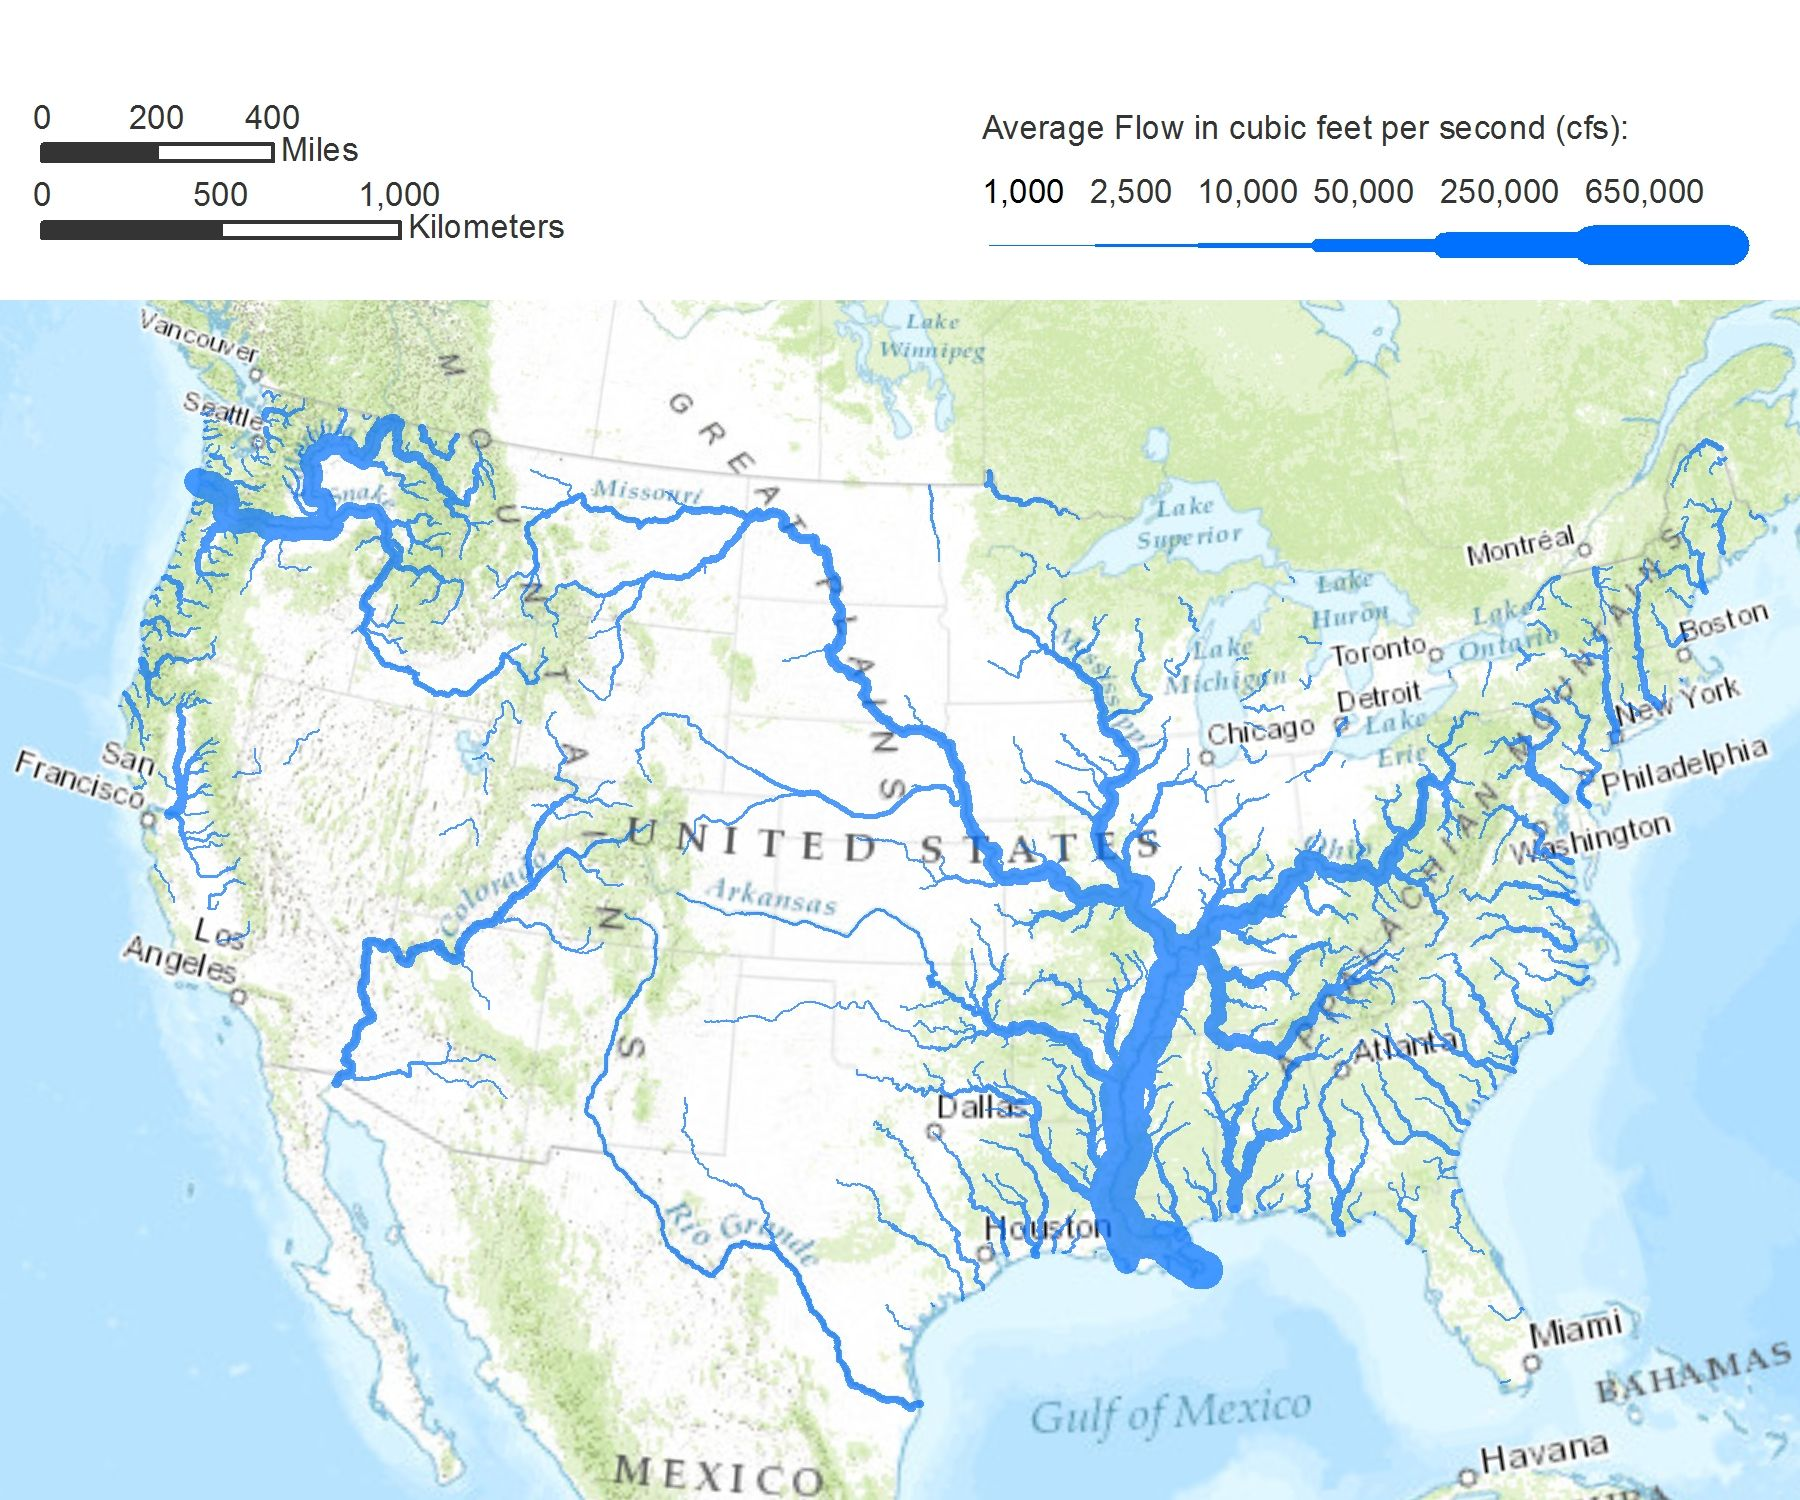 Flow Rates A map of the United States illustrating flow rates of